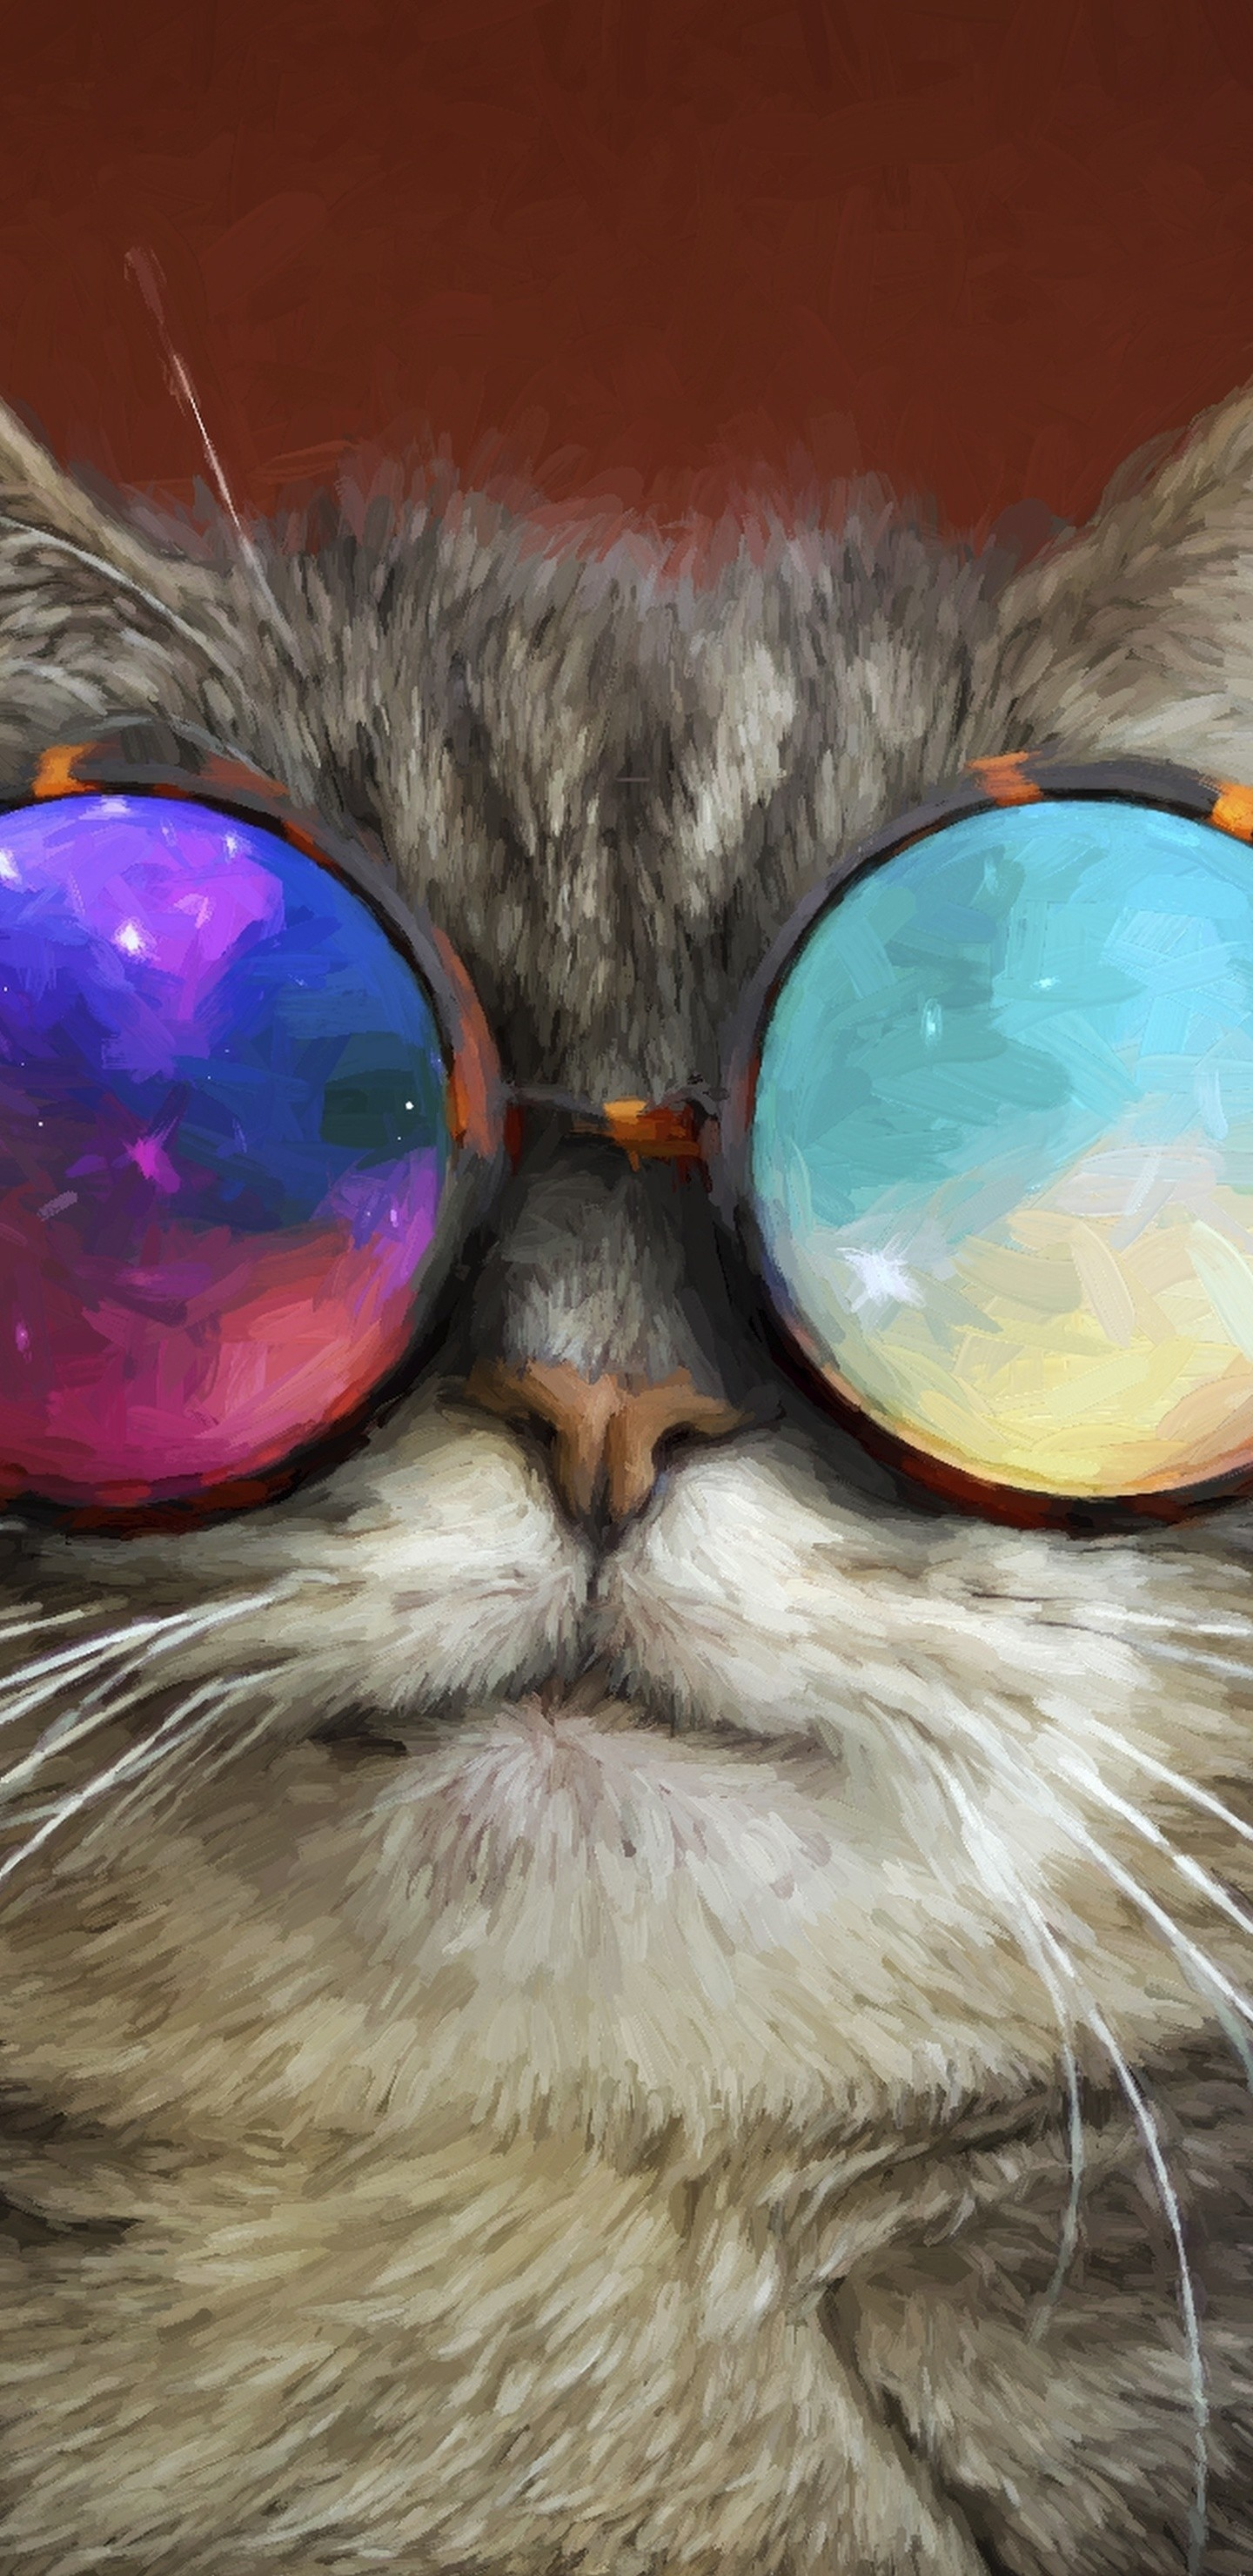 Res: 1440x2960, cat-glasses-party-cool-painting-tx.jpg